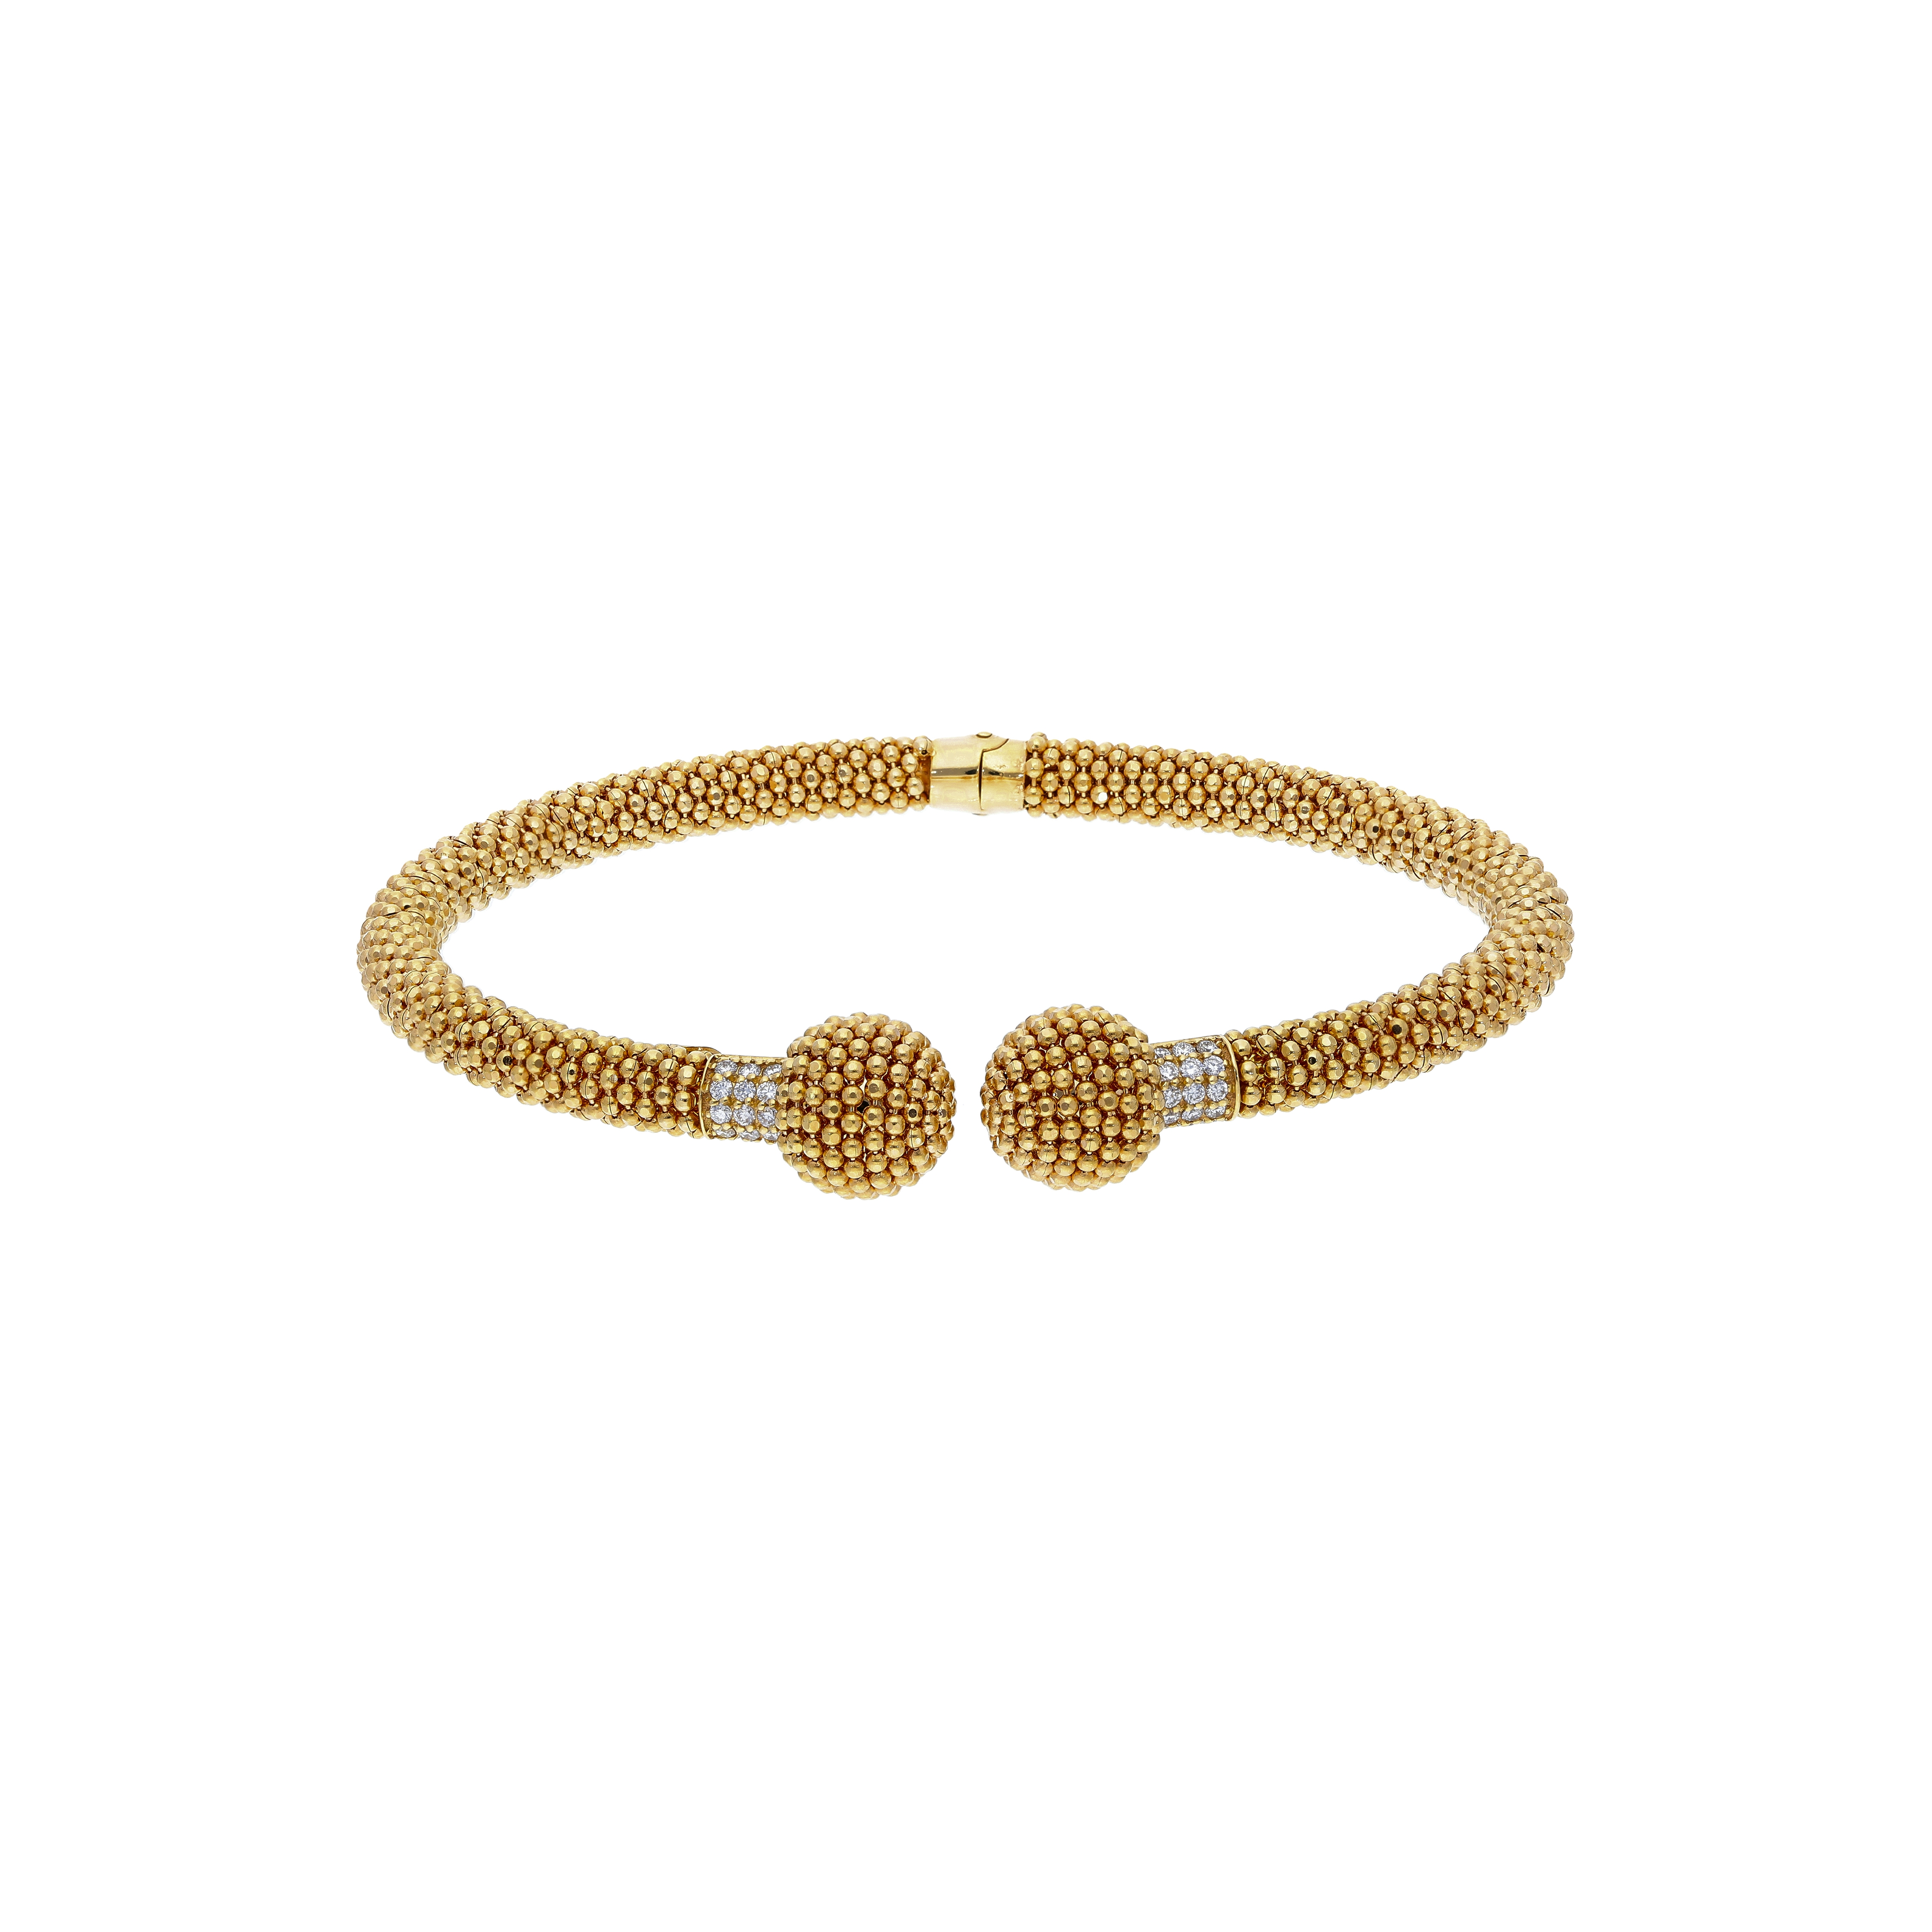 Bracelet Made of 18 Kt yellow Gold With Diamonds